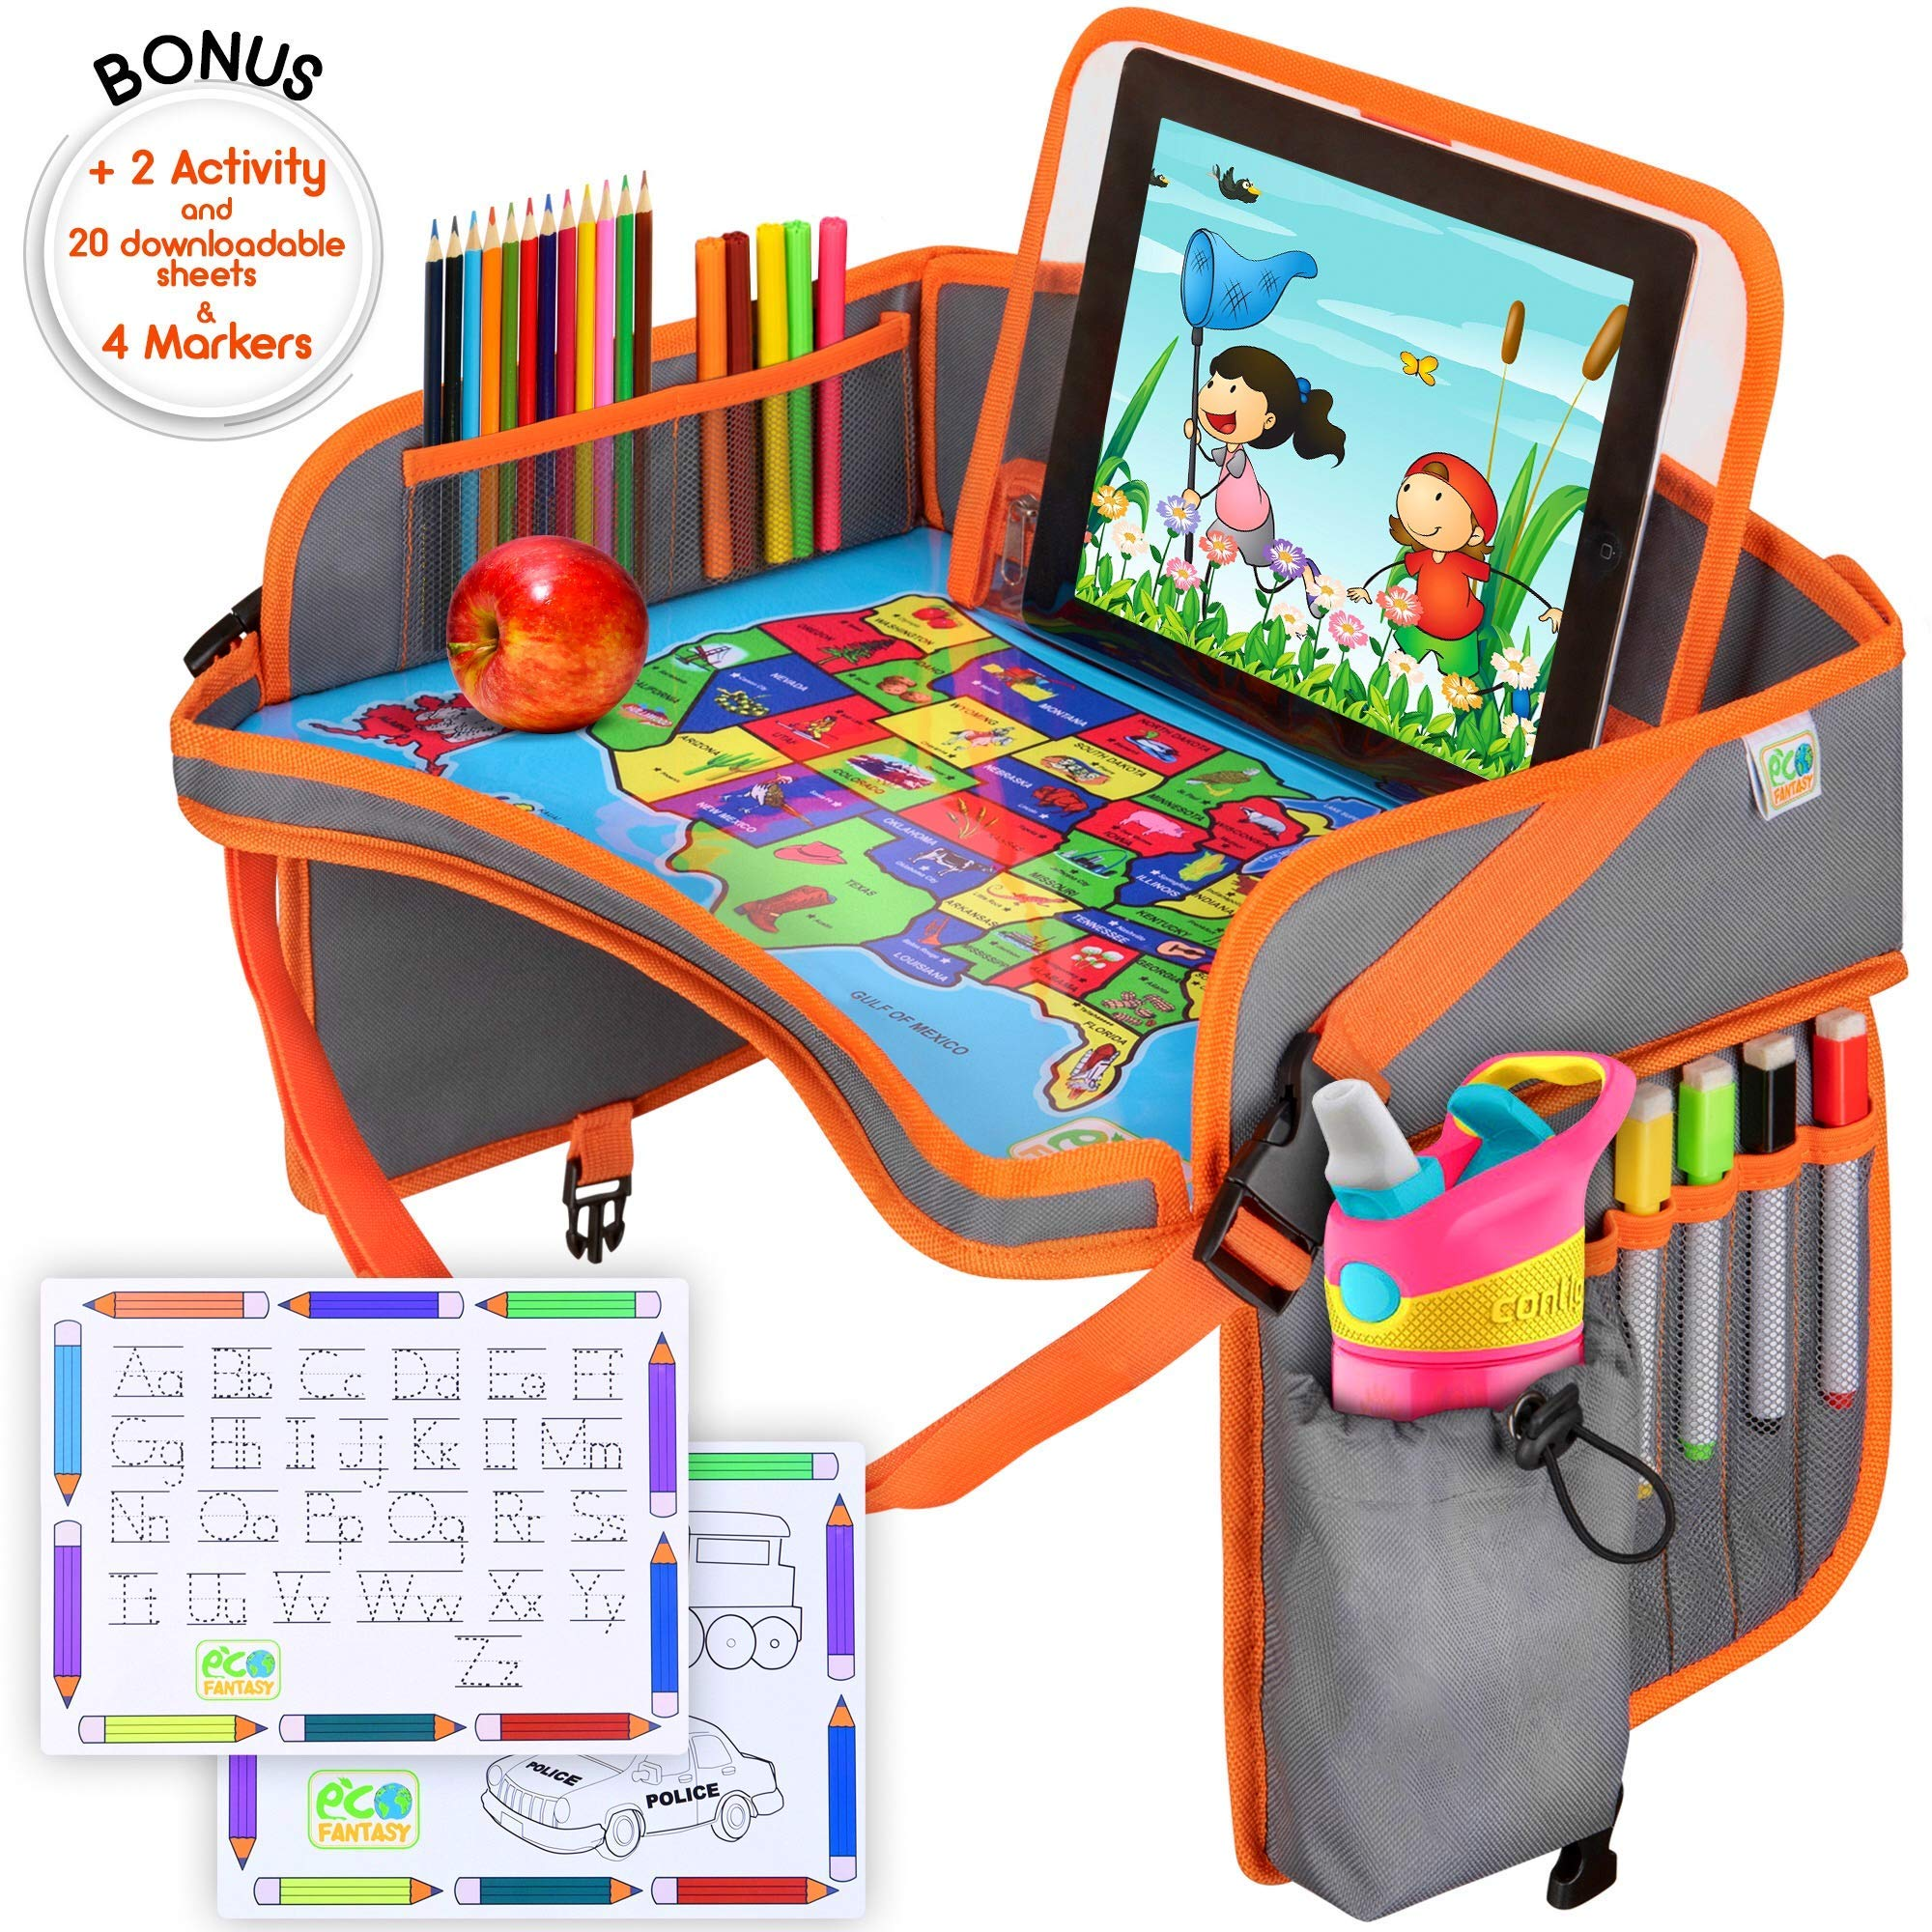 US Kids Travel Car Seat Tray - Toddlers Carseat Tray Organizer - Large Tablet & Cup Holder - Waterproof Food & Snack Lap Tray - Road Trip Activities for Kids - Travel Games for Kids in Airplane by EcoFantasy